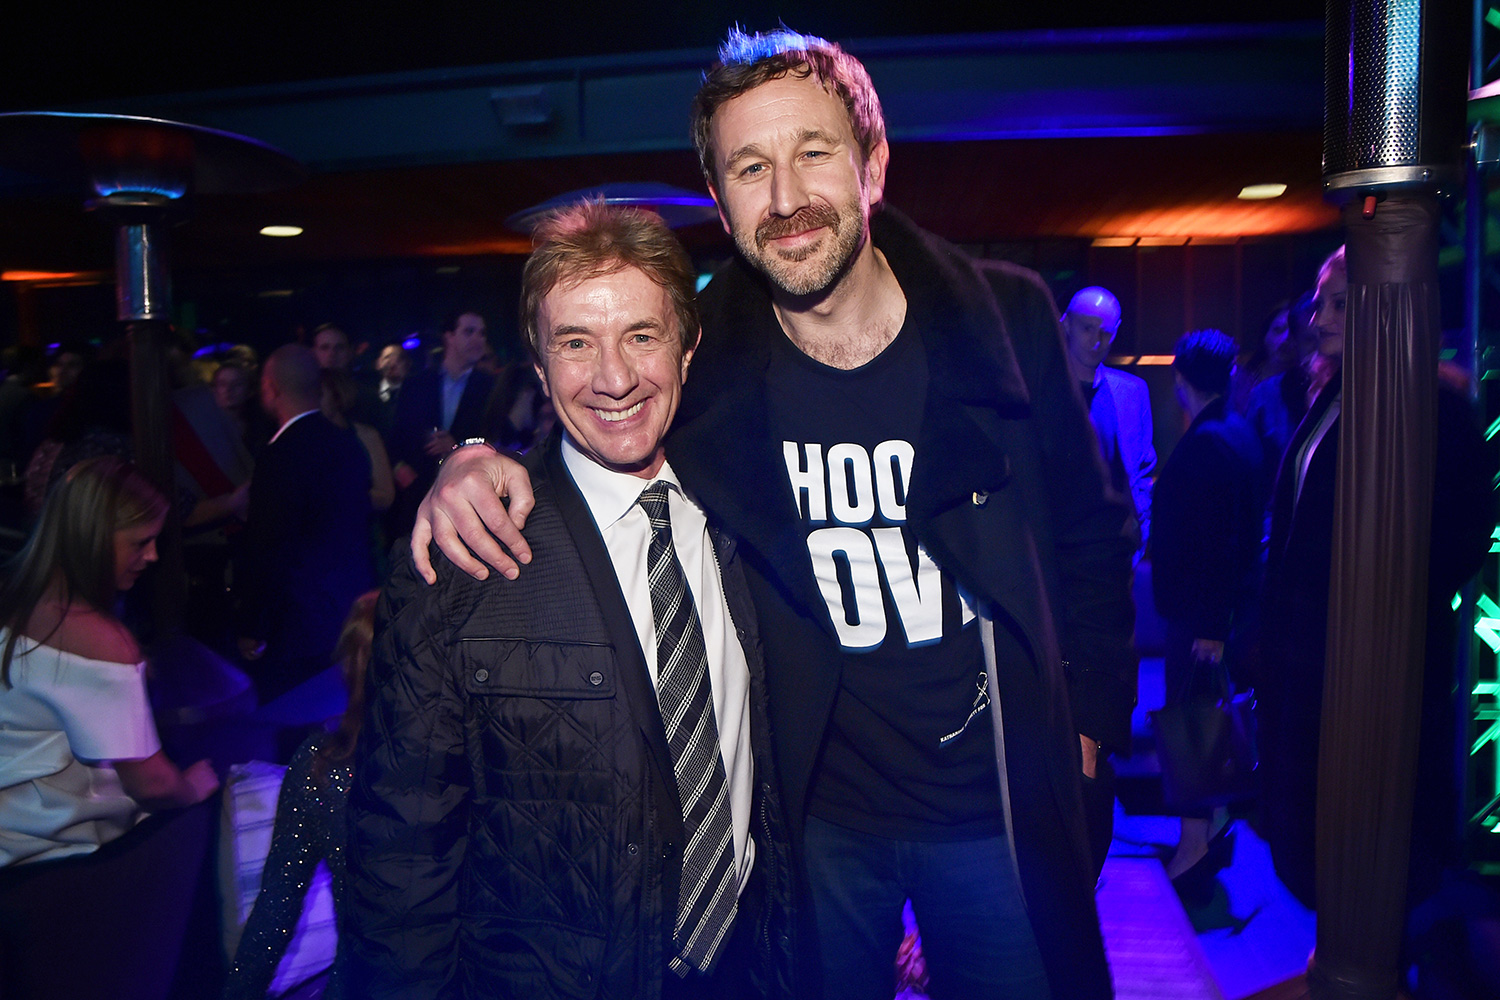 Martin Short and Chris O'Dowd attend the Oscar Wilde Awards 2020 at Bad Robot on February 06, 2020 in Santa Monica, California